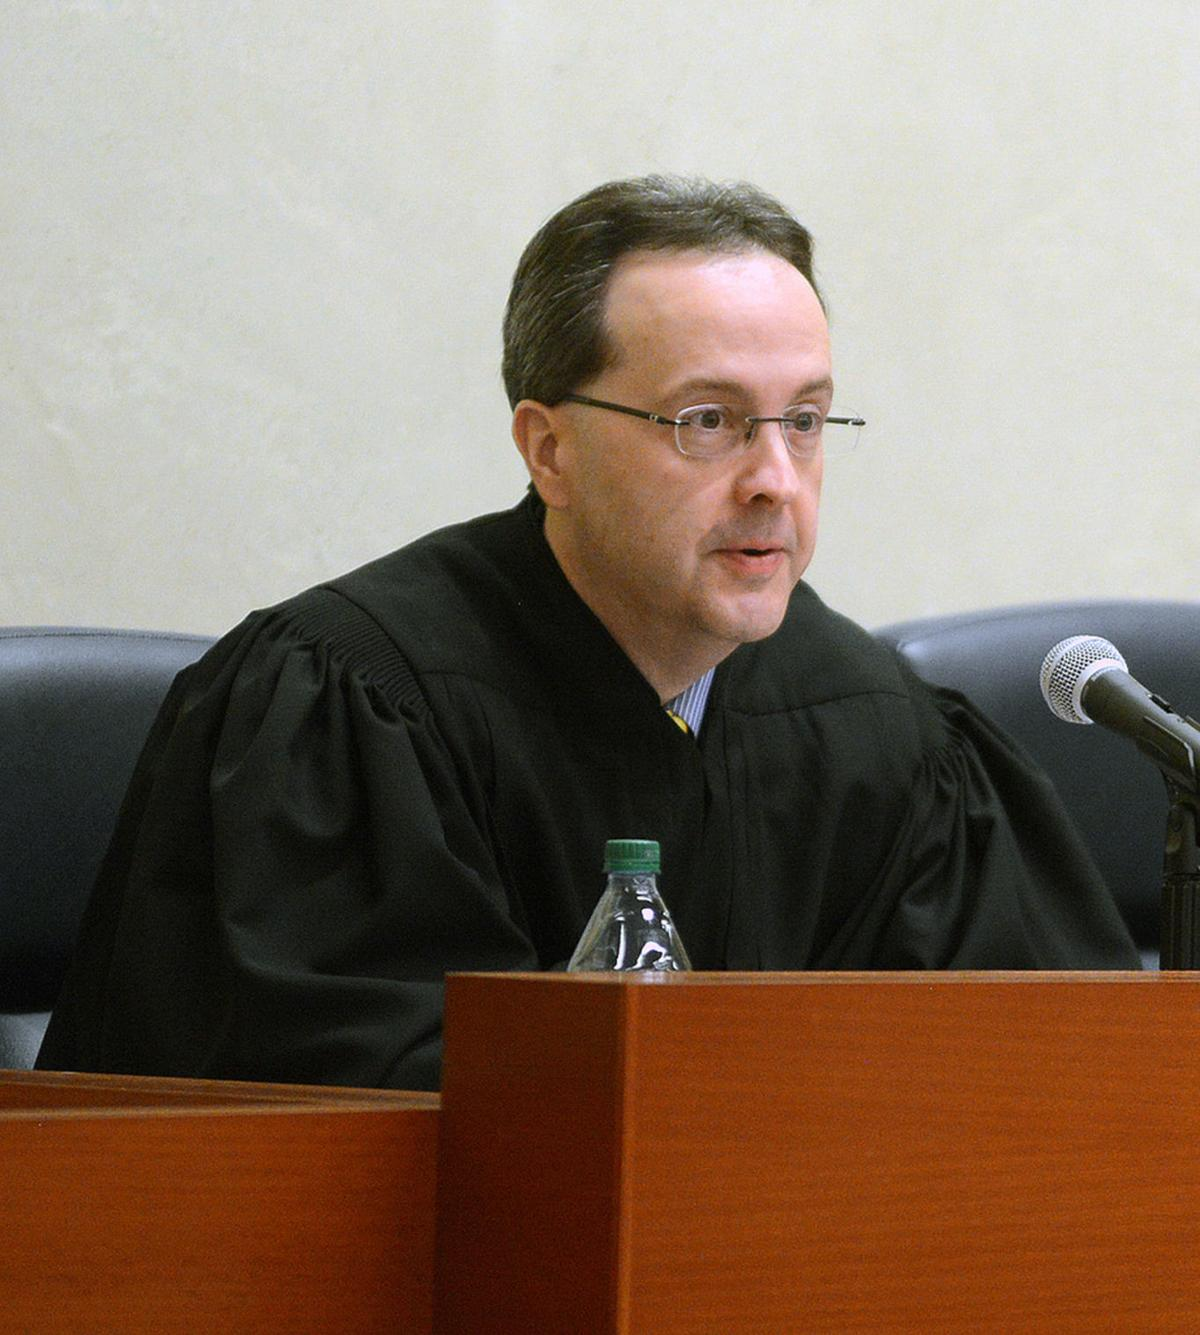 Justice Loughry